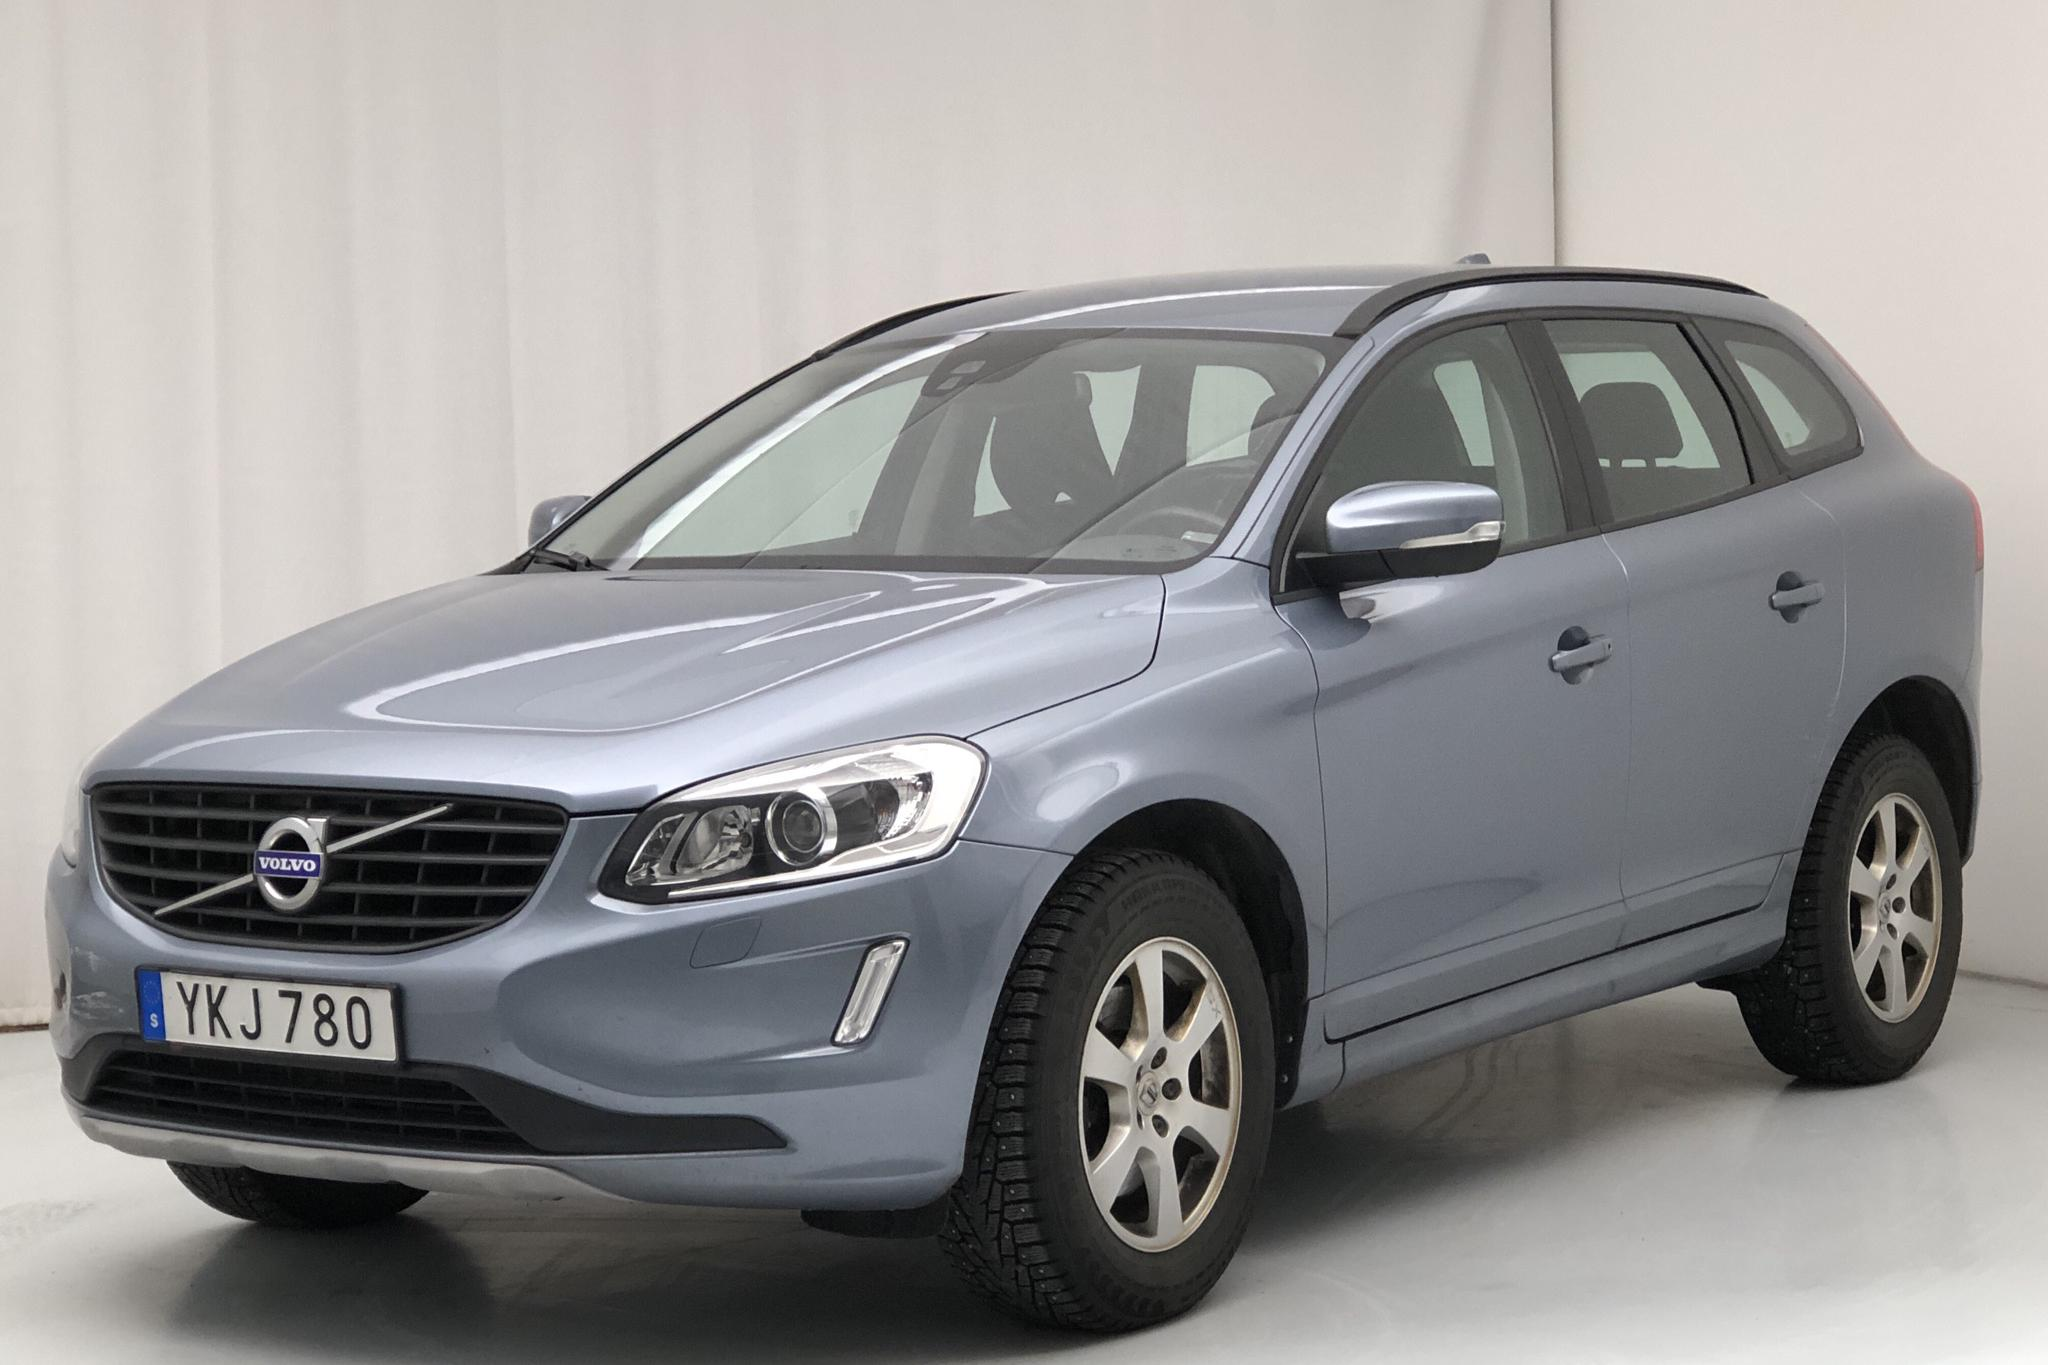 Volvo XC60 D3 2WD (150hk) - 9 797 mil - Automat - Light Blue - 2017